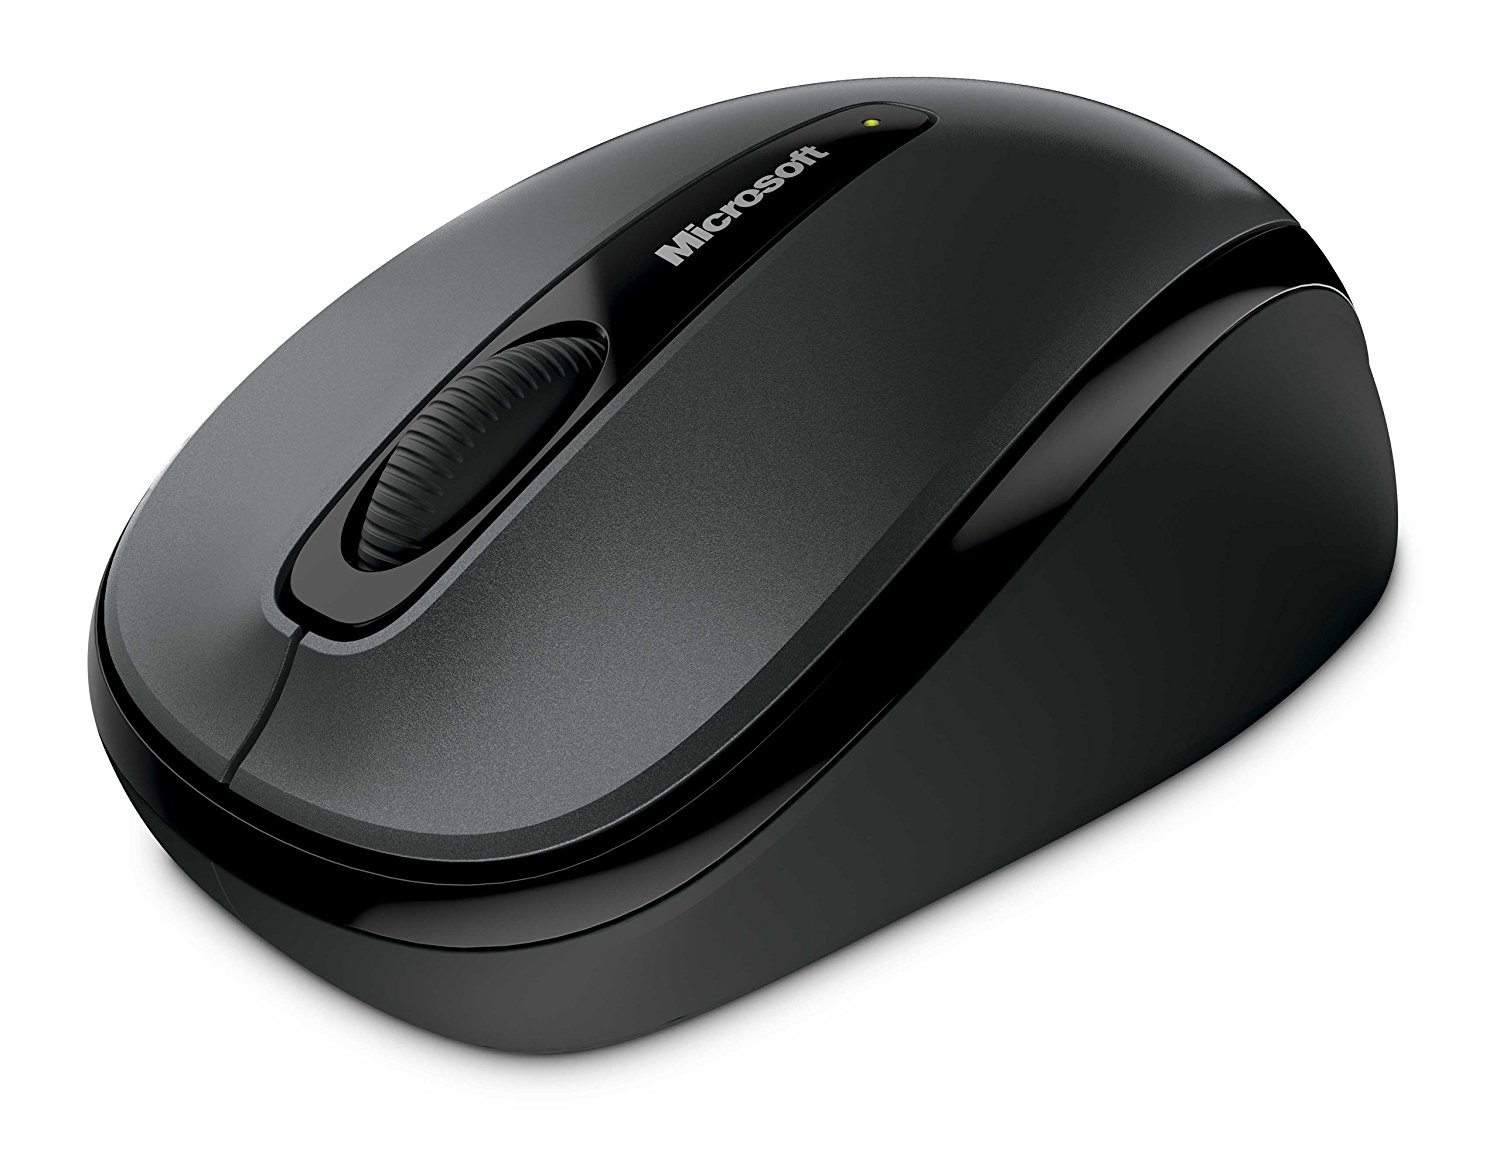 Microsoft Wireless Mobile Mouse 3500 - Loch Ness Gray GMF-00010 4